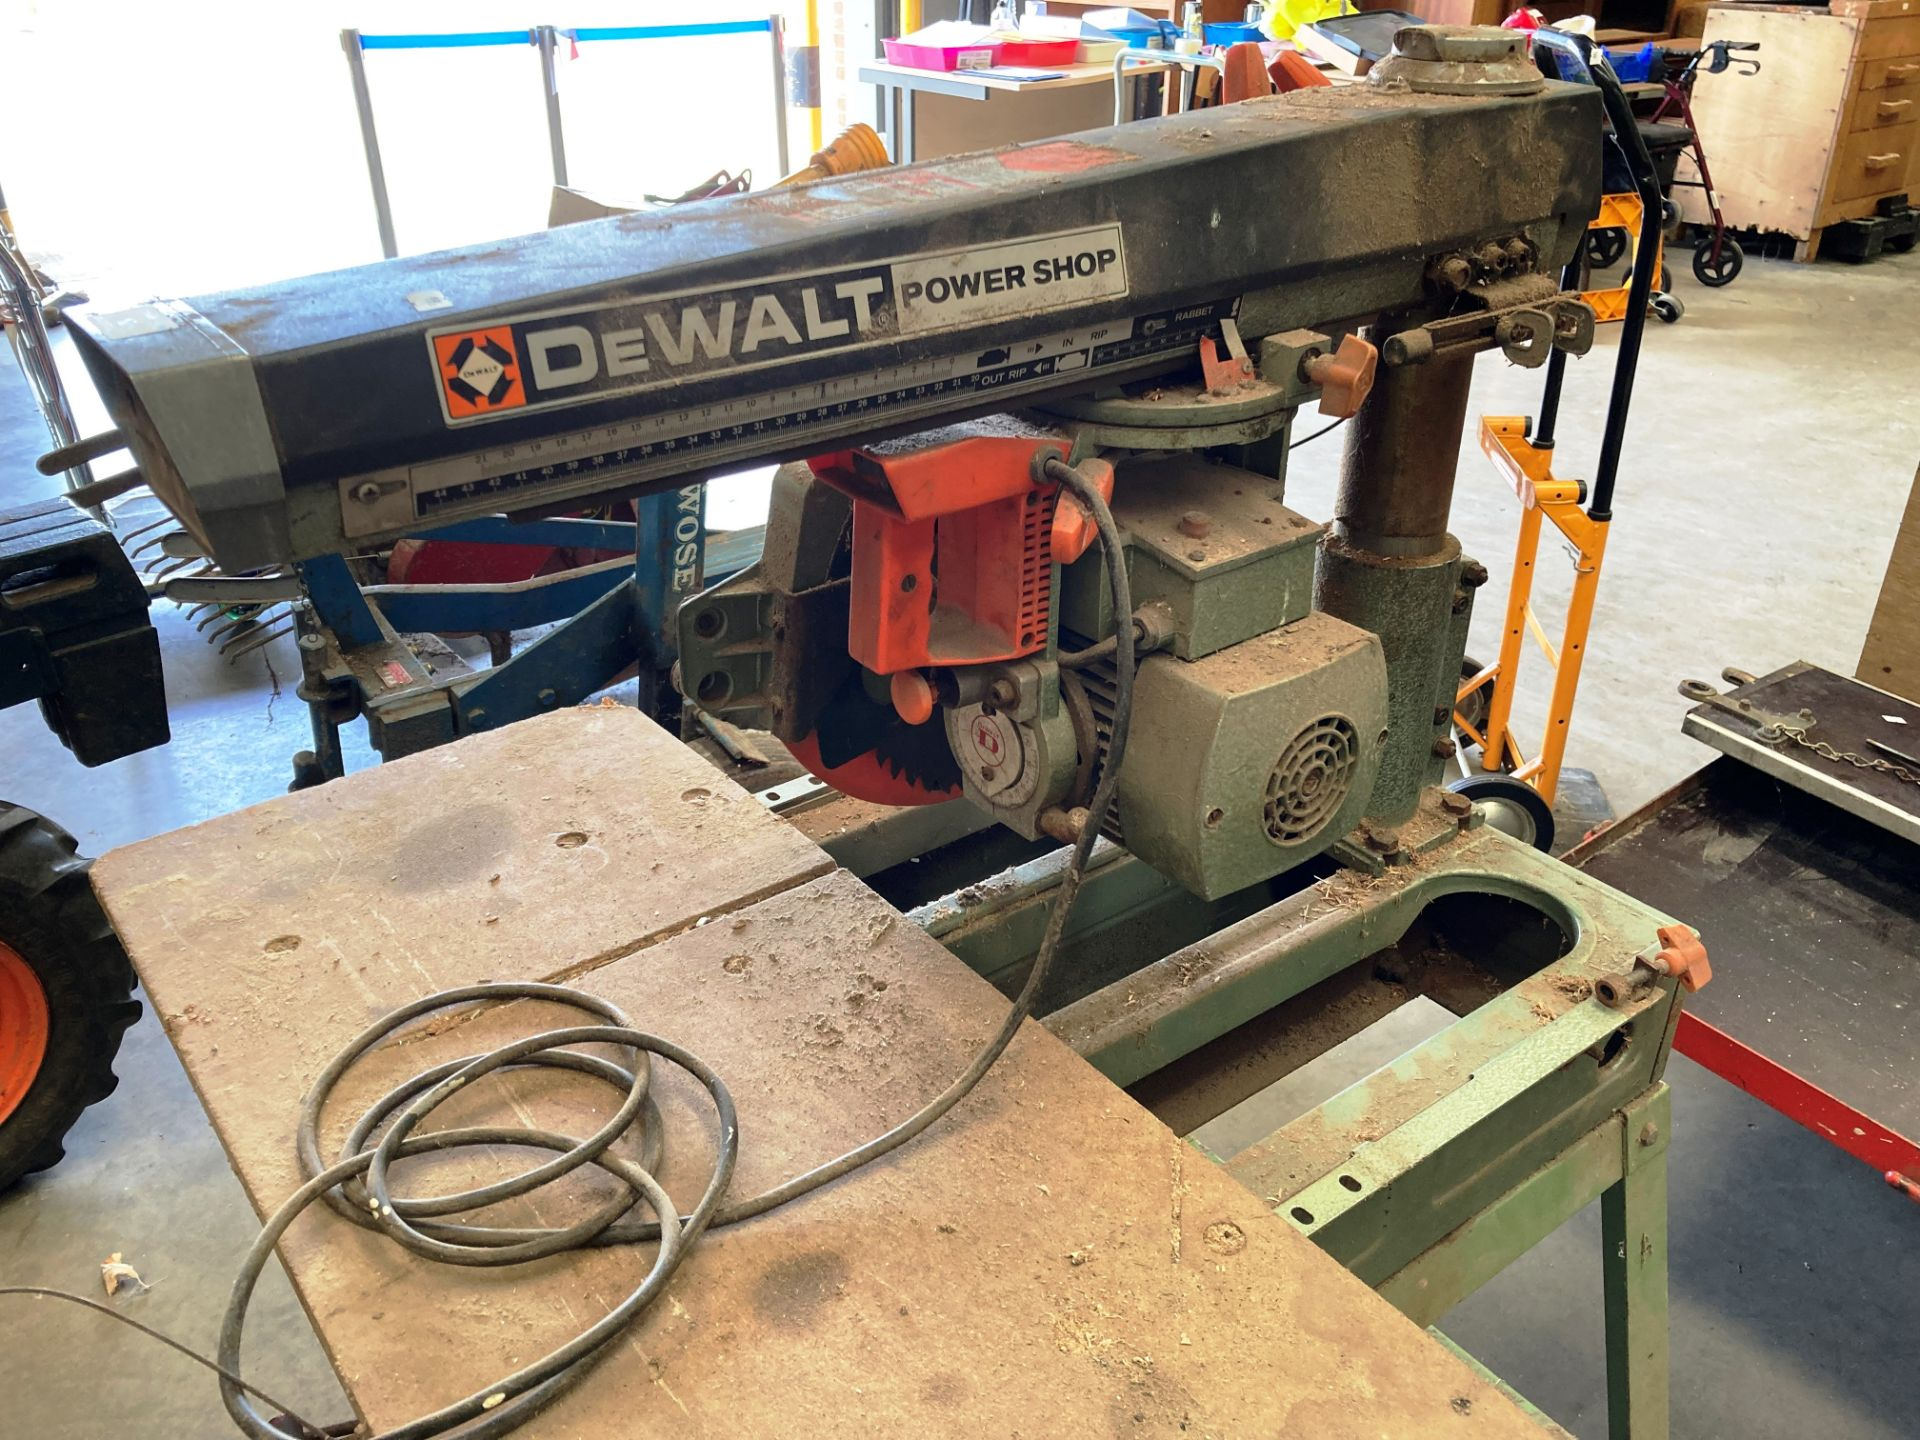 A DeWalt Power Shop DW125 radial arm saw - 240v (failed PAT test - loose earth - check before - Image 2 of 2